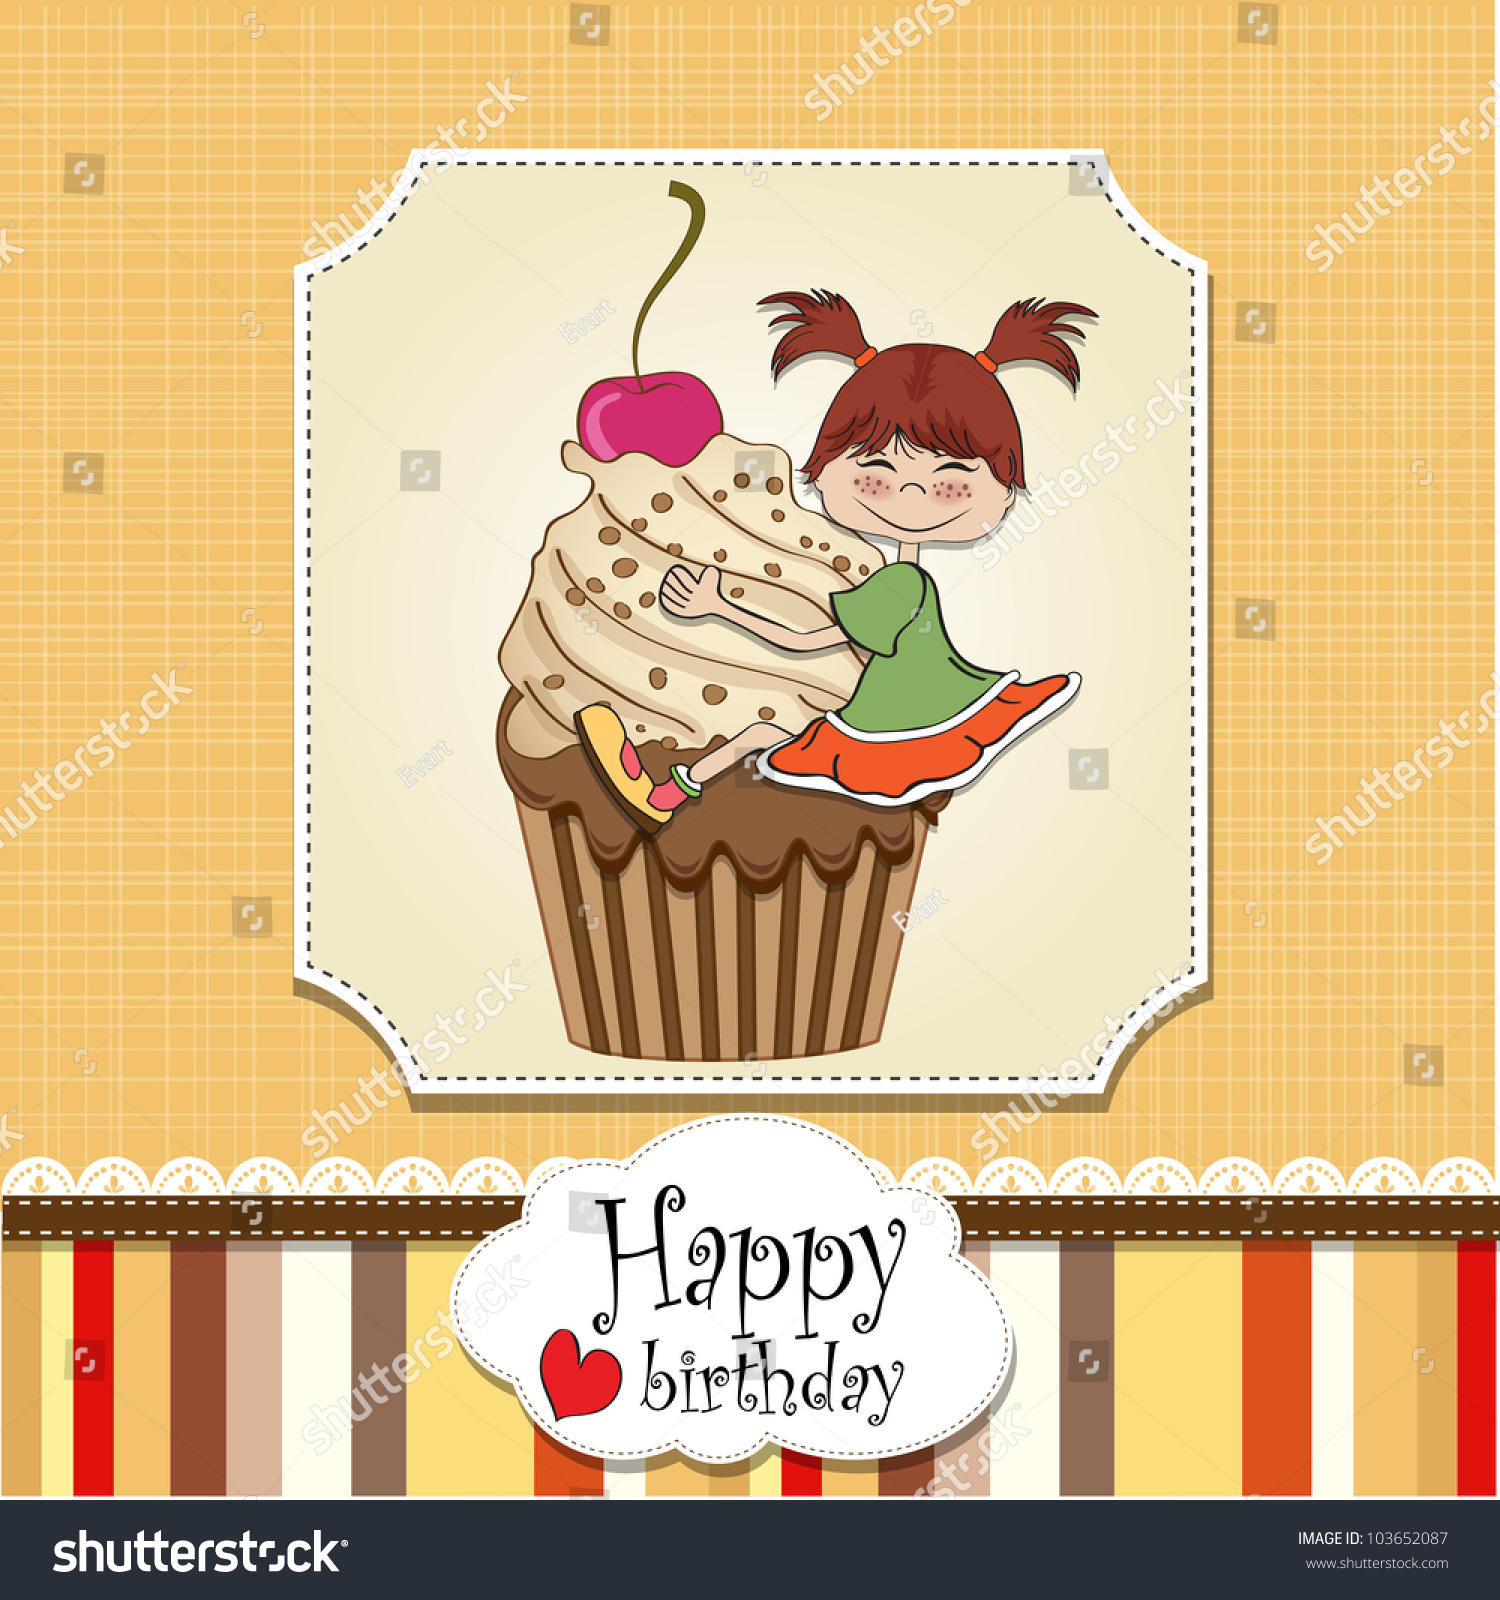 Birthday Card With Funny Girl Perched On Cupcake Vector – Funny Girl Birthday Cards